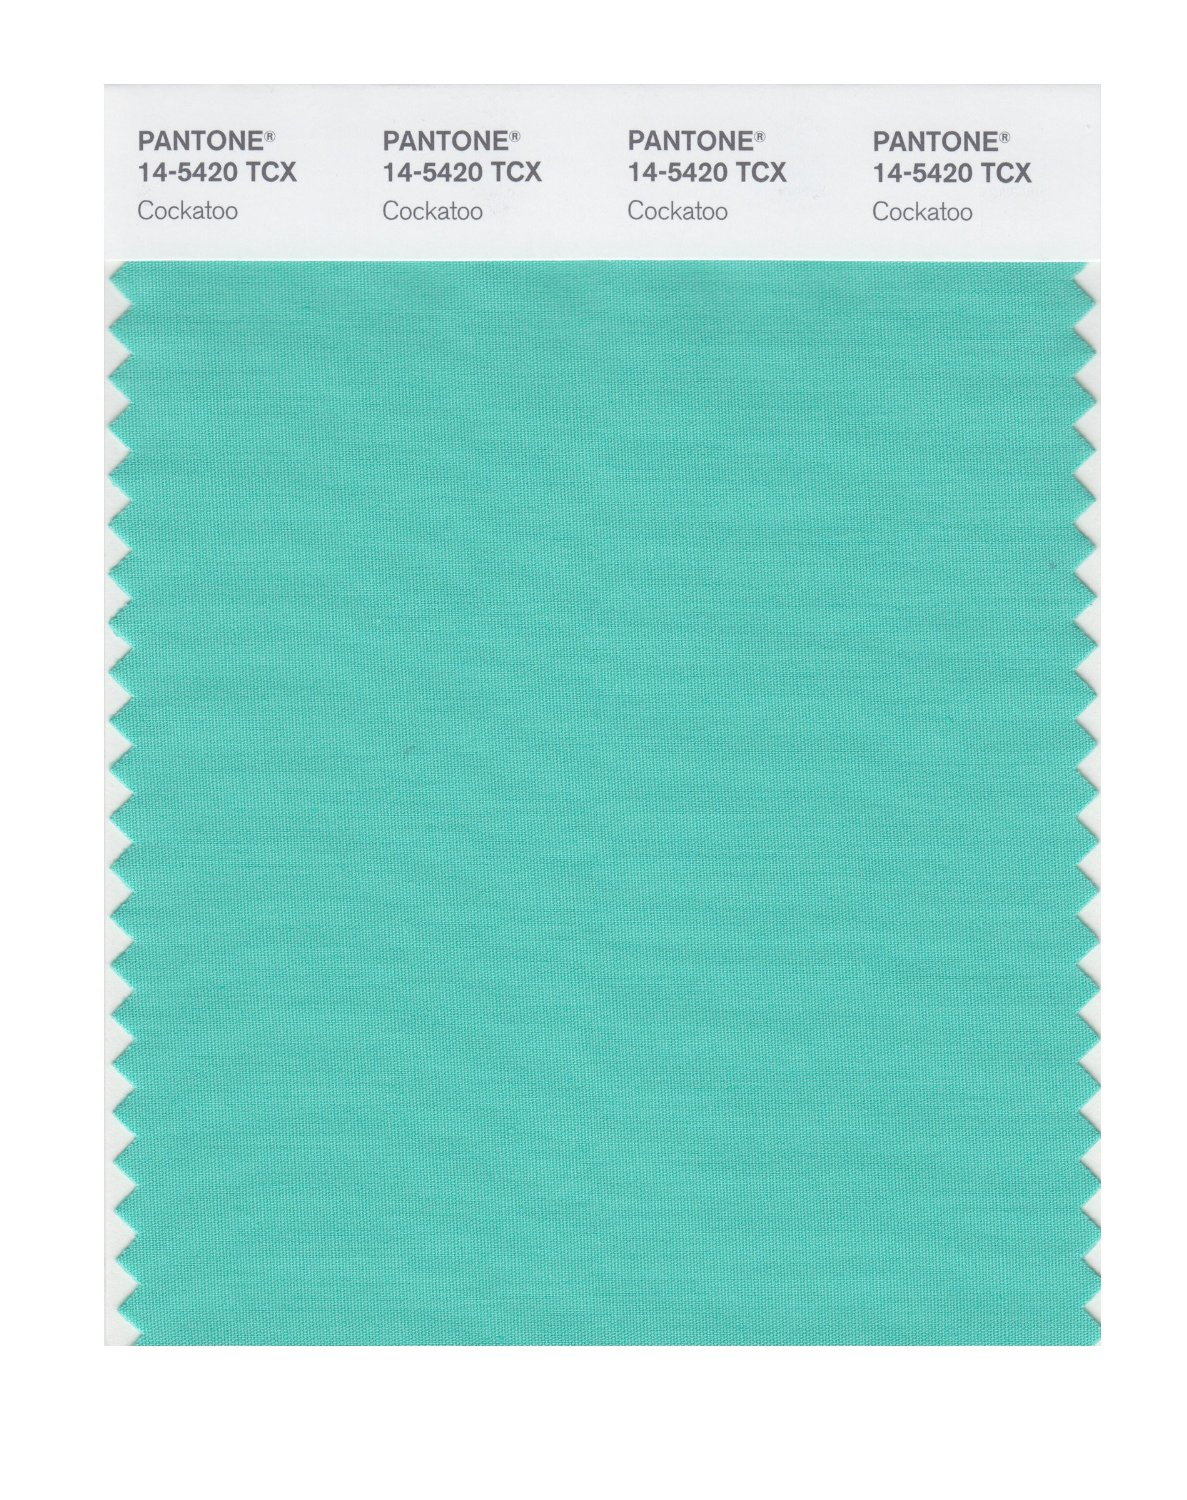 Pantone Smart Swatch 14-5420 Cockatoo